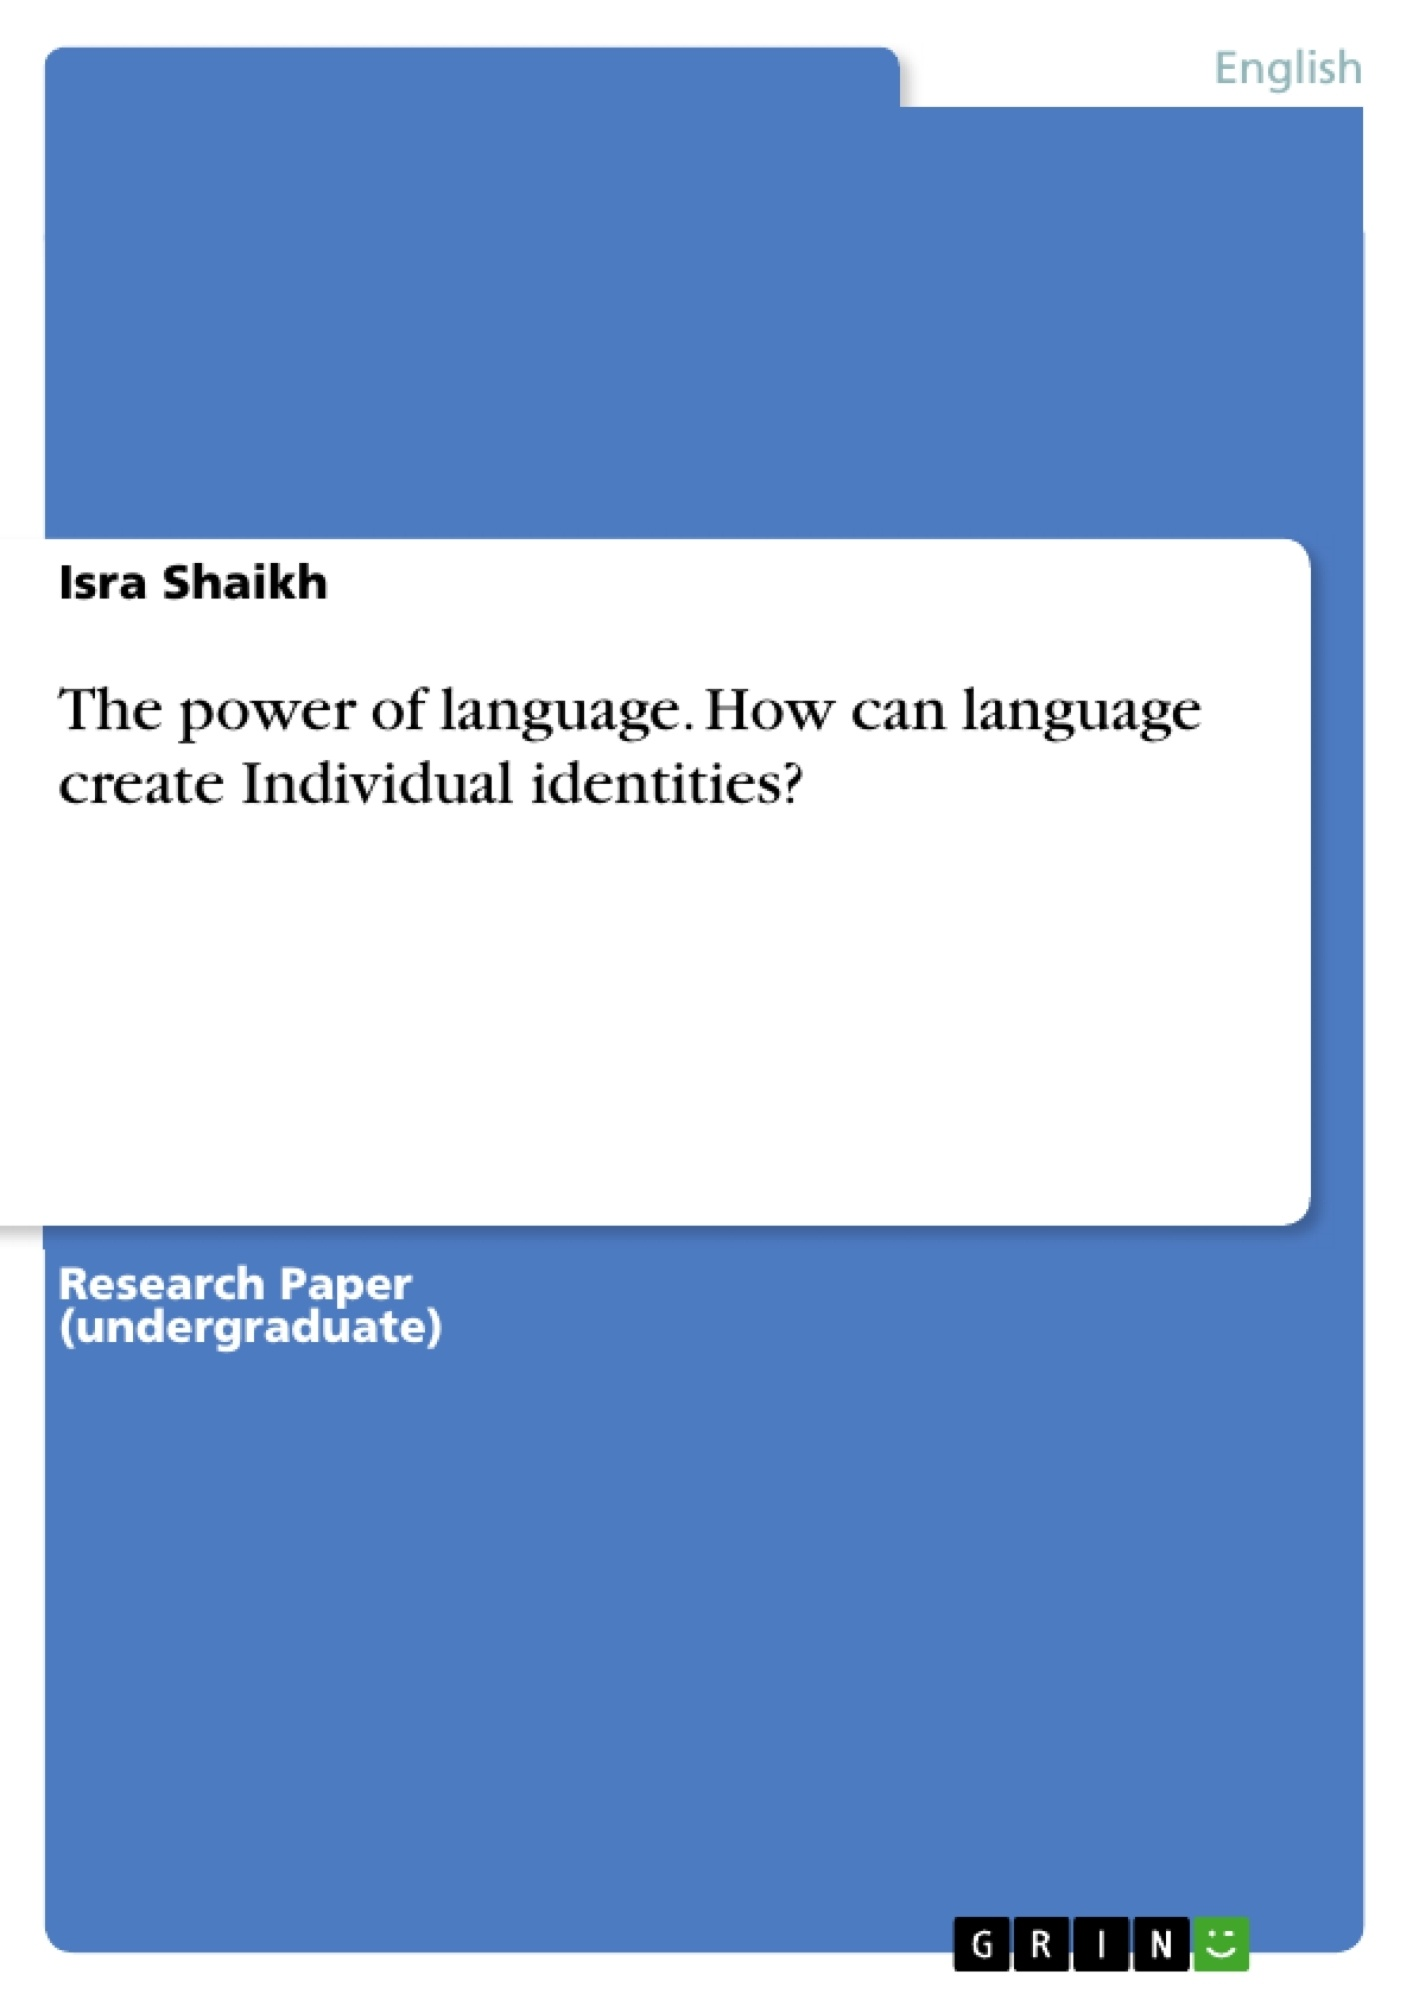 009 465275 0 Research Paper How To Publish As An Marvelous A Undergraduate In India Full